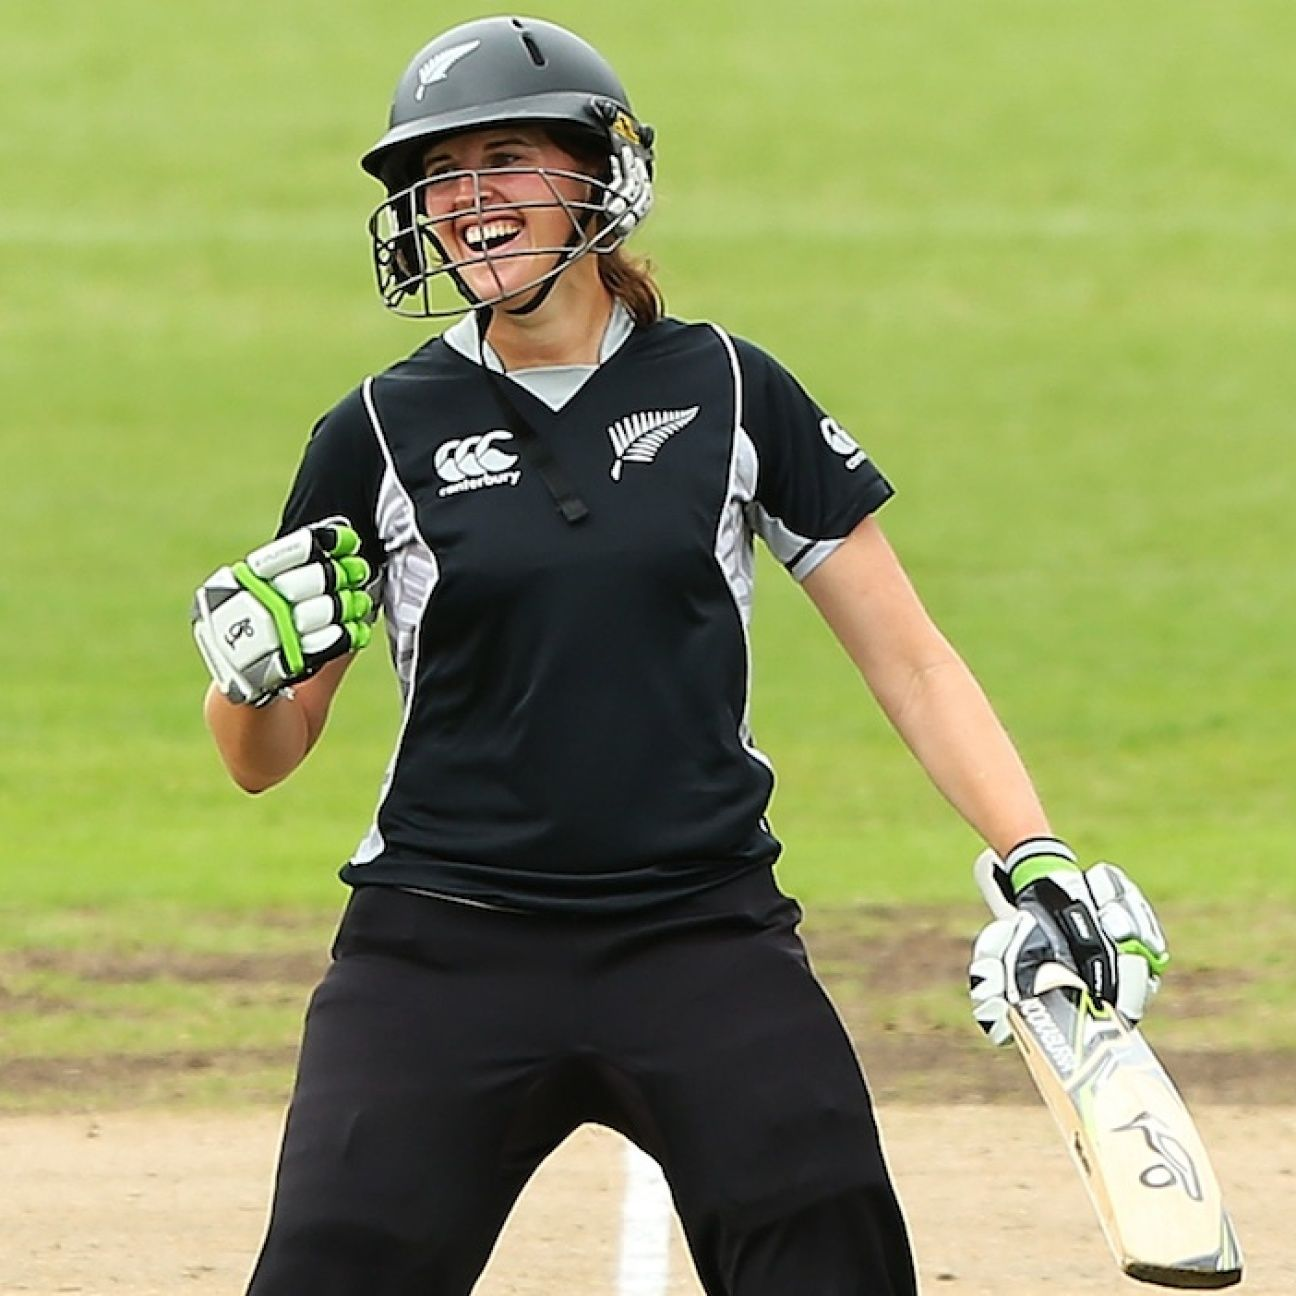 Amy Satterthwaite to take break from cricket to have her first child